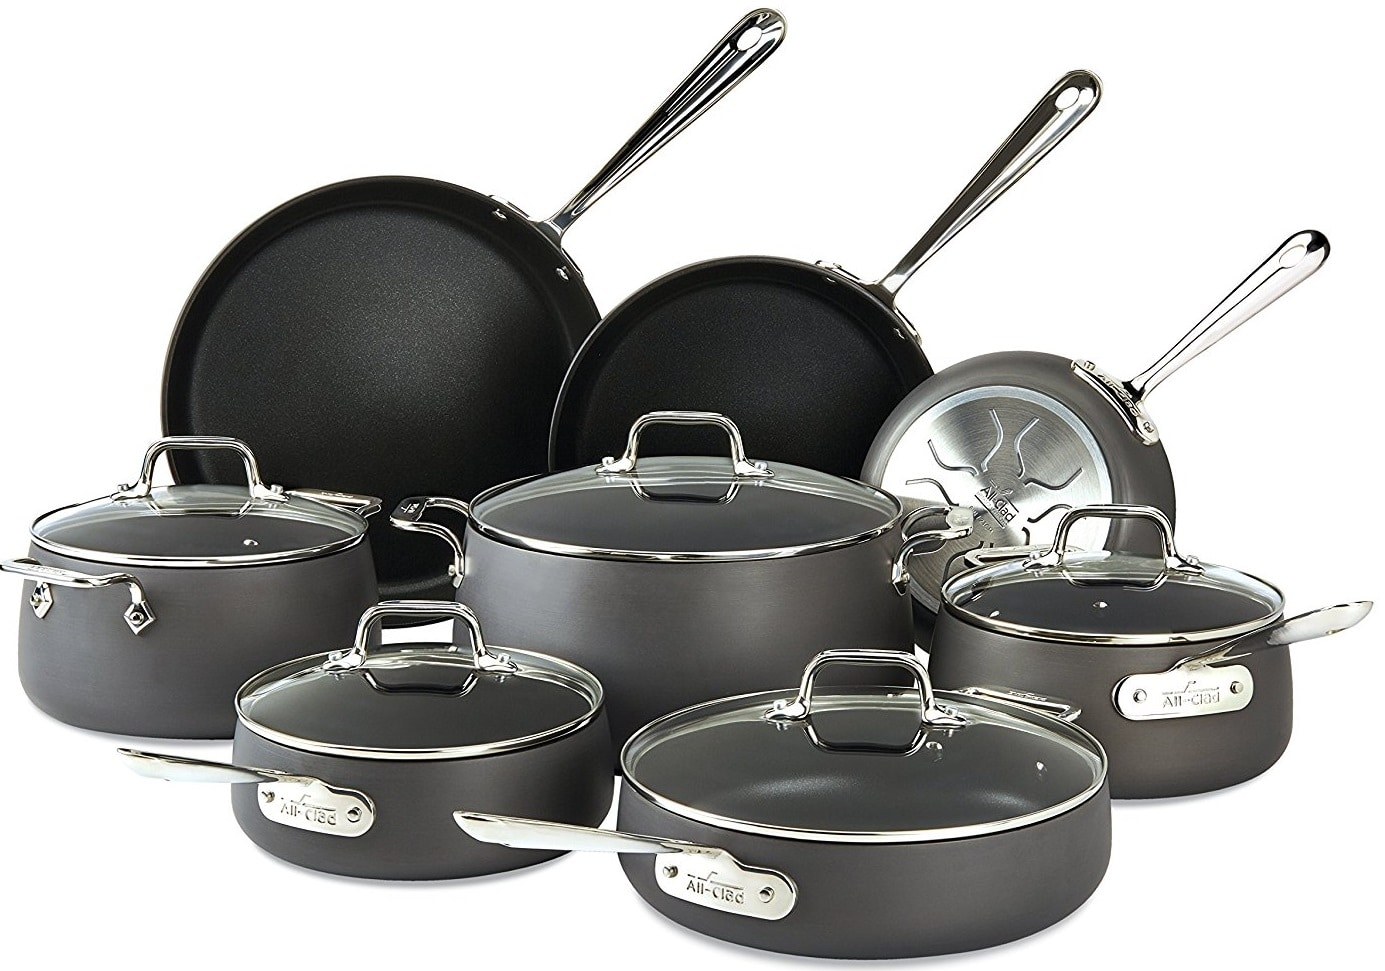 the best non stick induction cookware modern options for modern cooktops on the gas the art. Black Bedroom Furniture Sets. Home Design Ideas